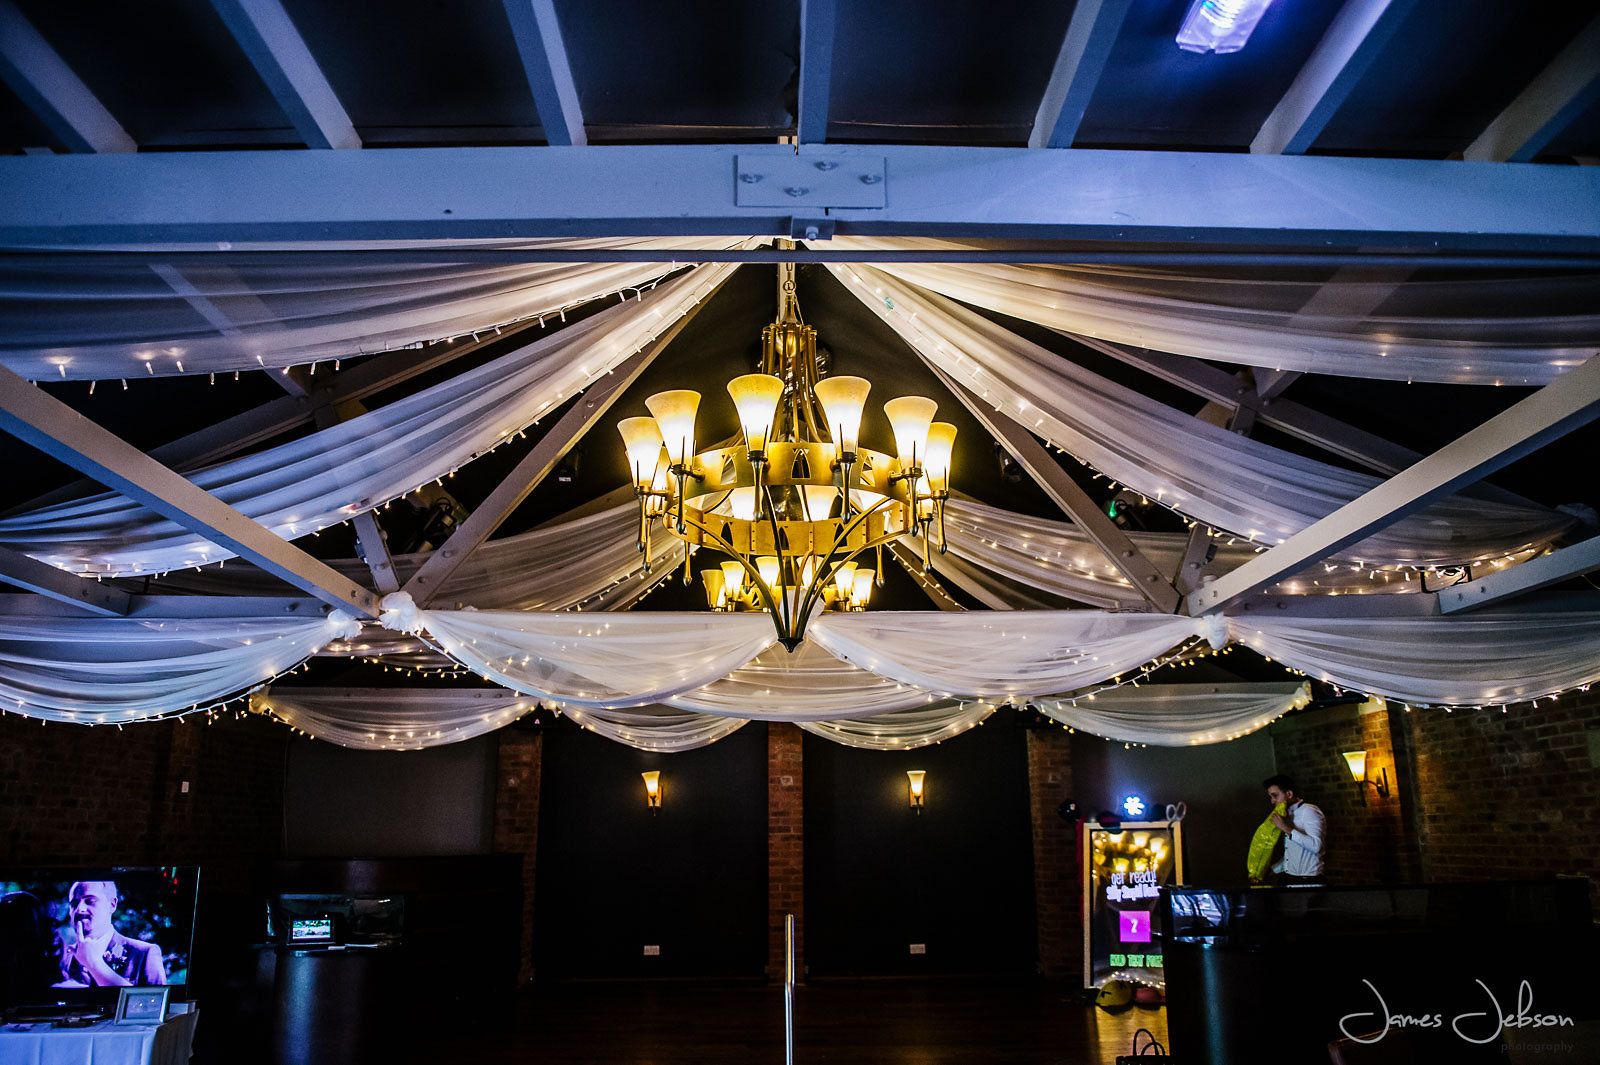 an image taken at night in one of their wedding suites showing a chandelier hanging from the ceiling